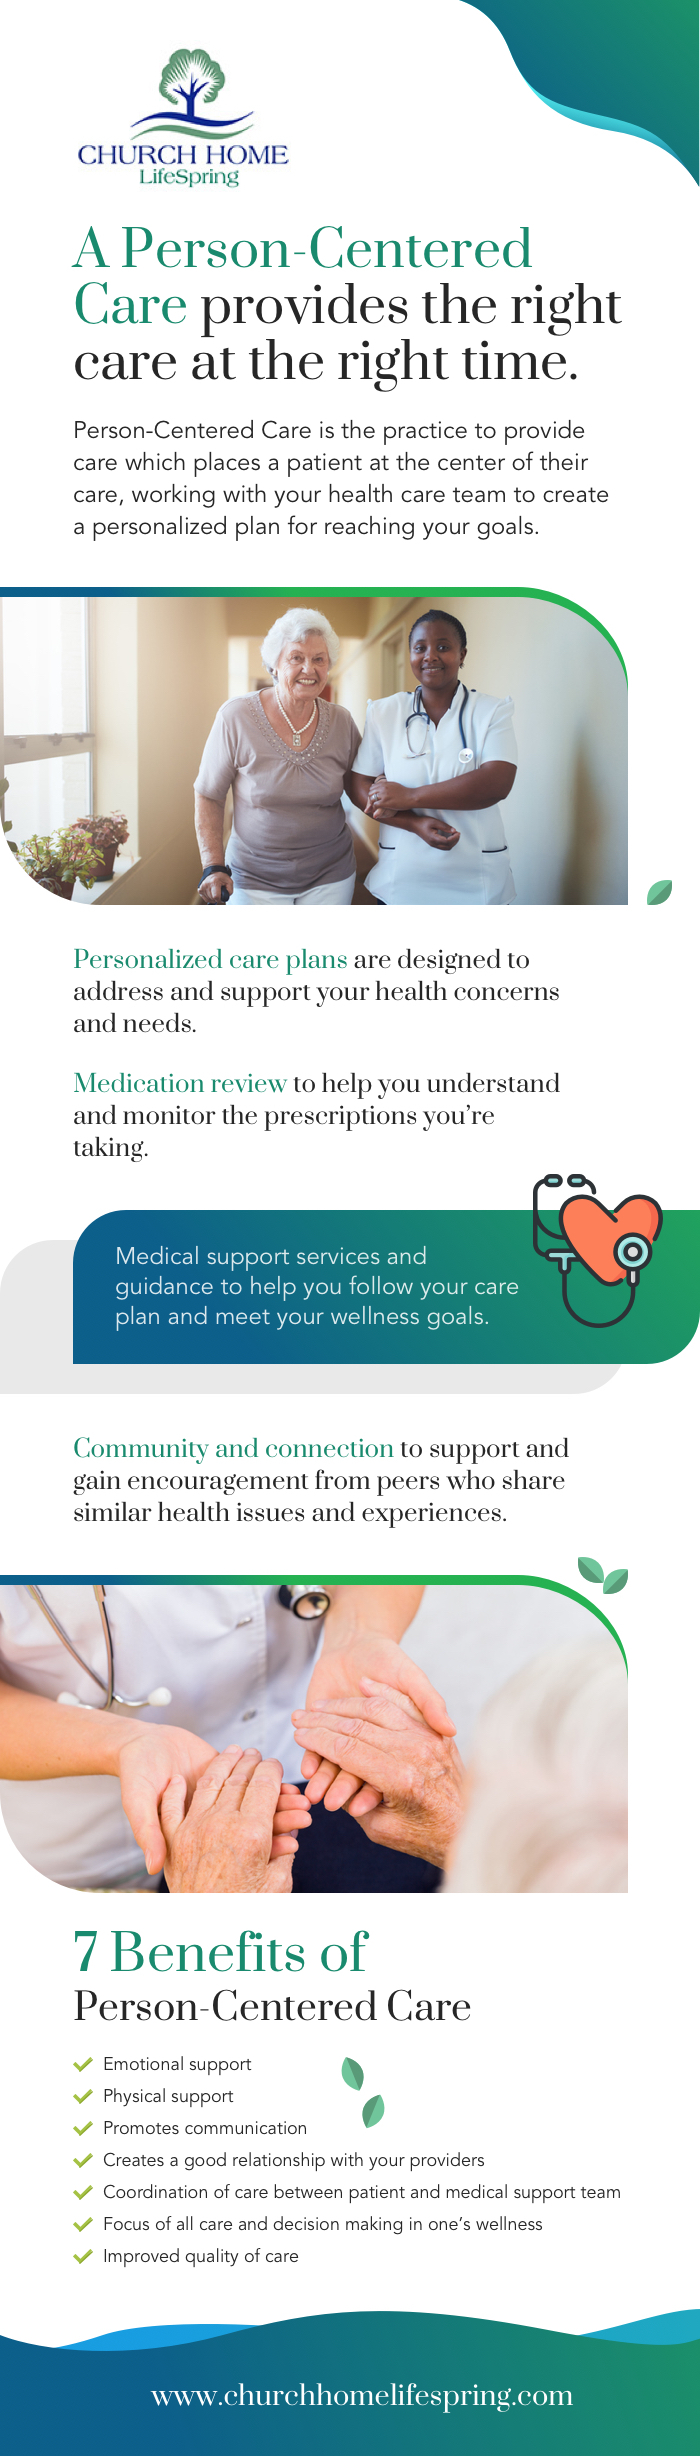 Church Home LifeSpring - Person Centered Care Infograohic_March 2020